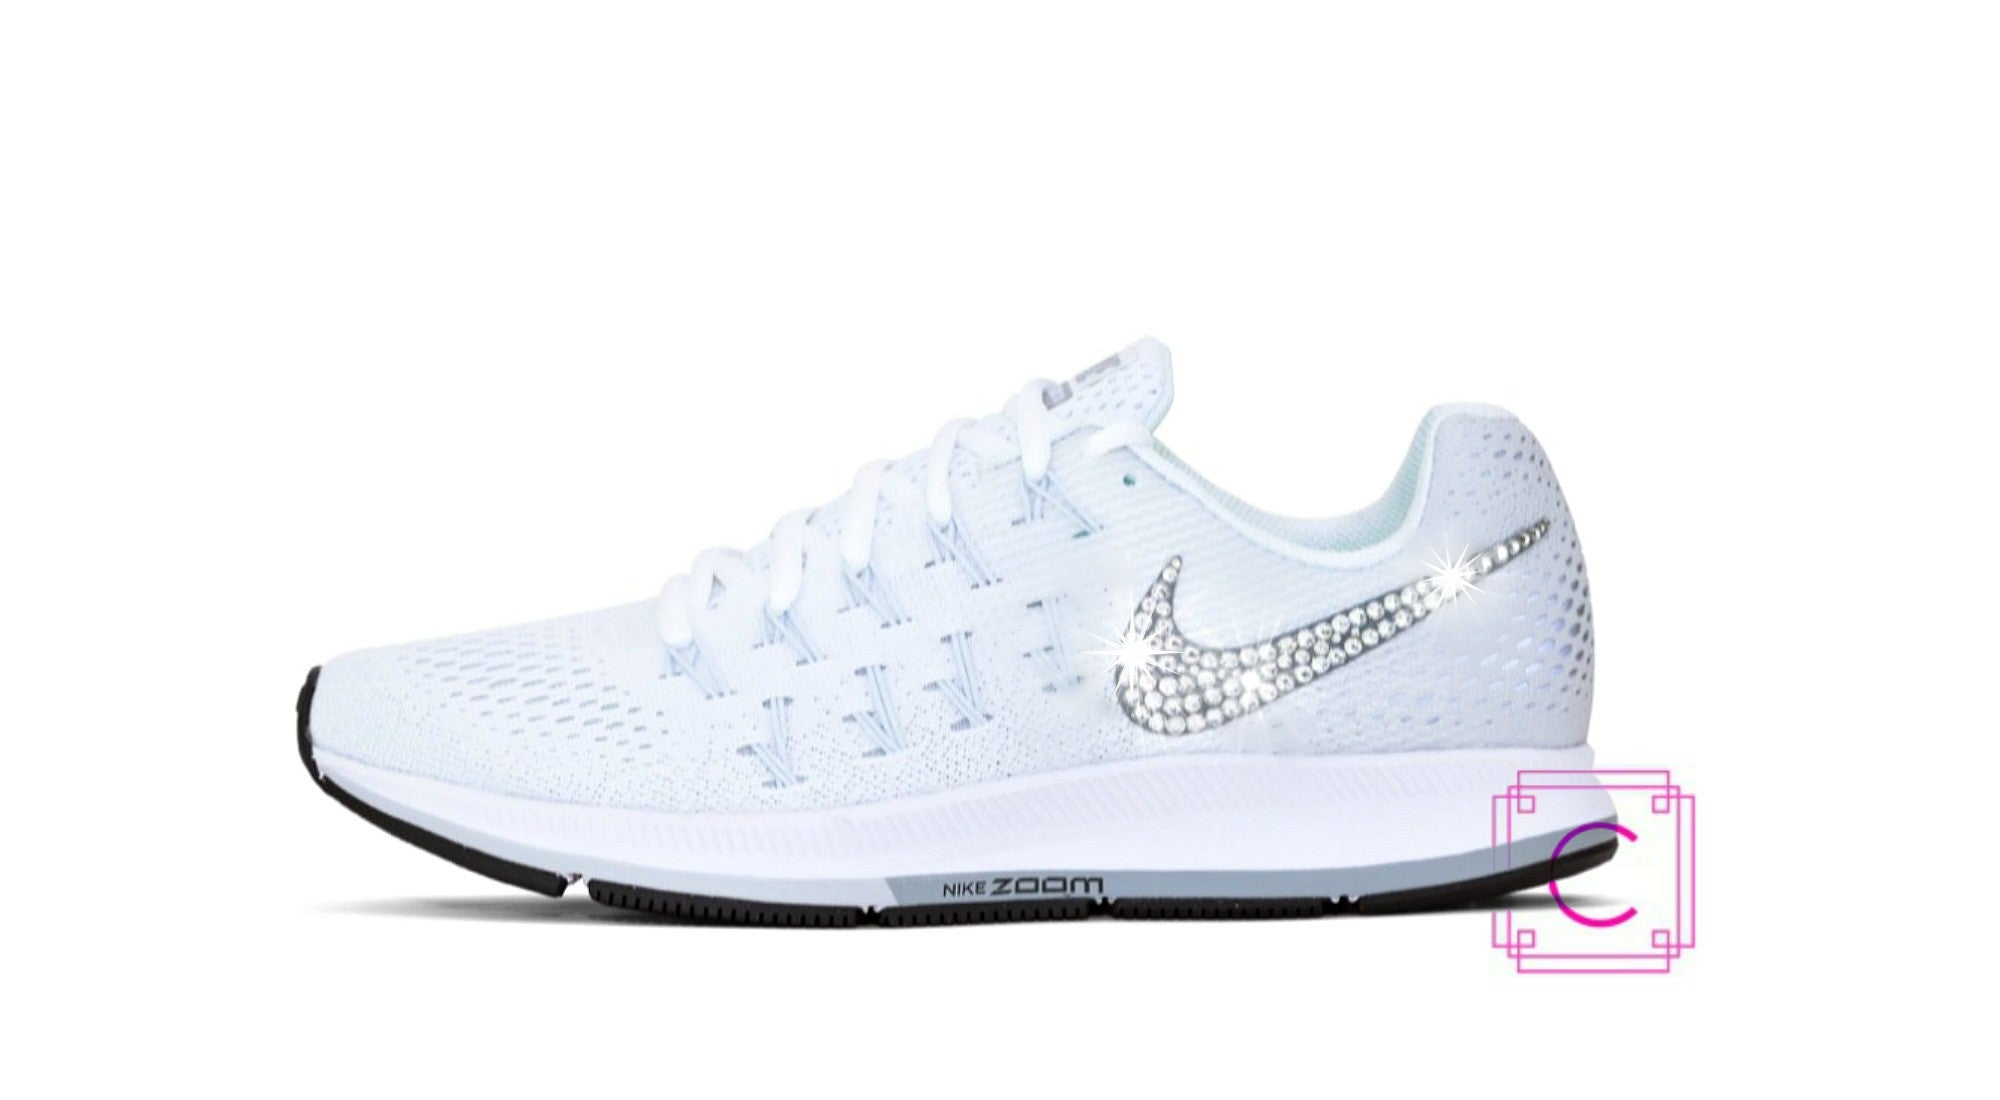 Women's Nike Zoom Pegasus 33 in White/Pure Platinum/Black/Cool Grey  w/SWAROVSKI® Crystal details